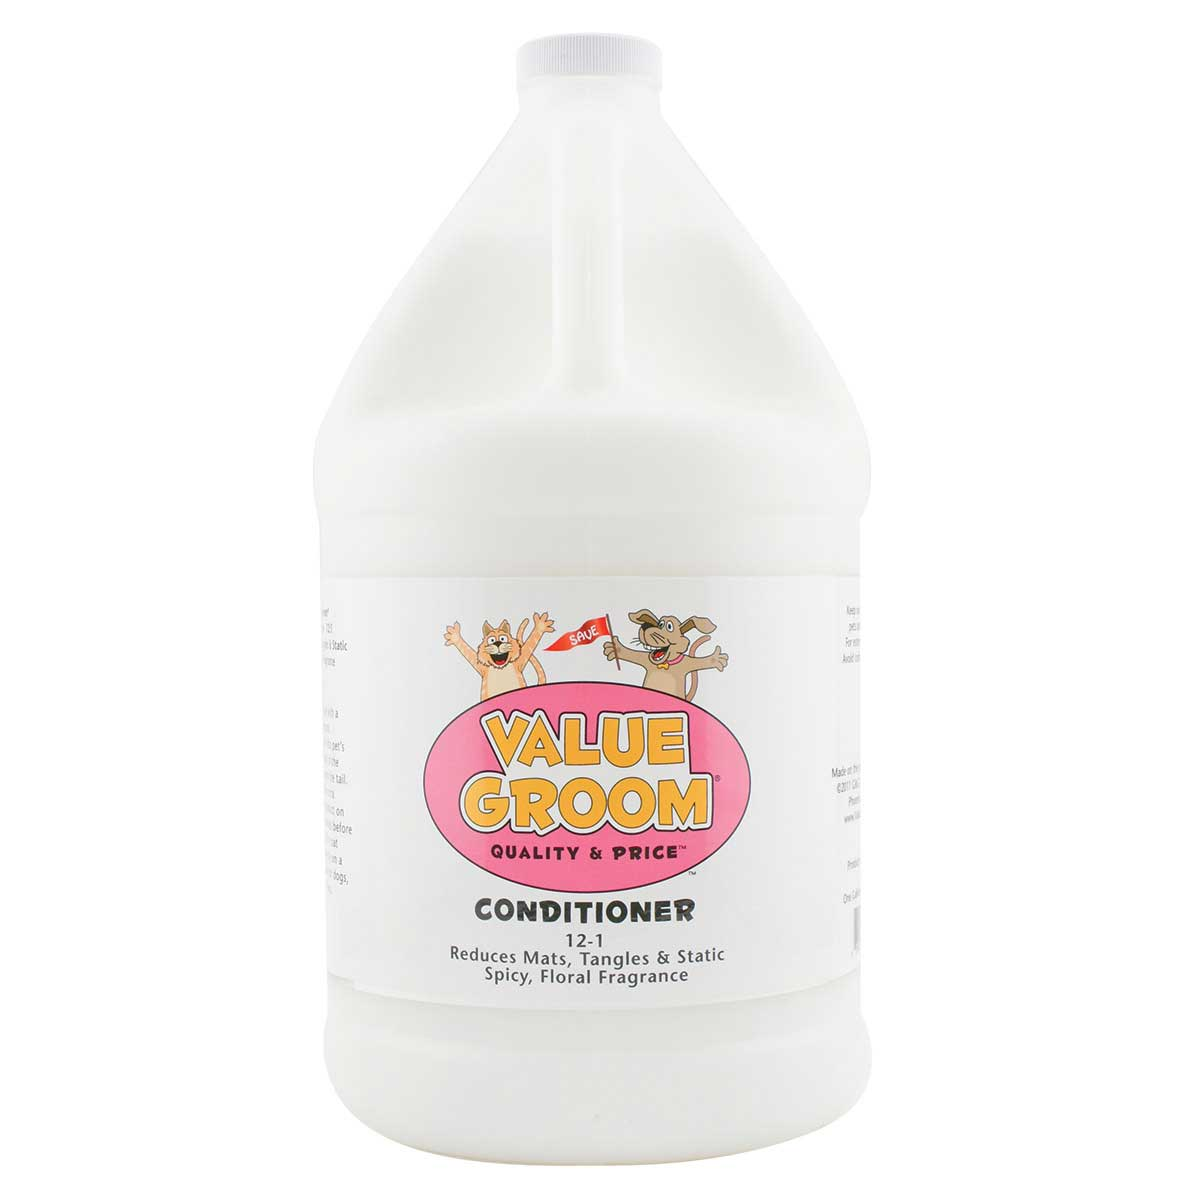 Value Groom Pet Conditioner Gallon - 12:1 Concentration